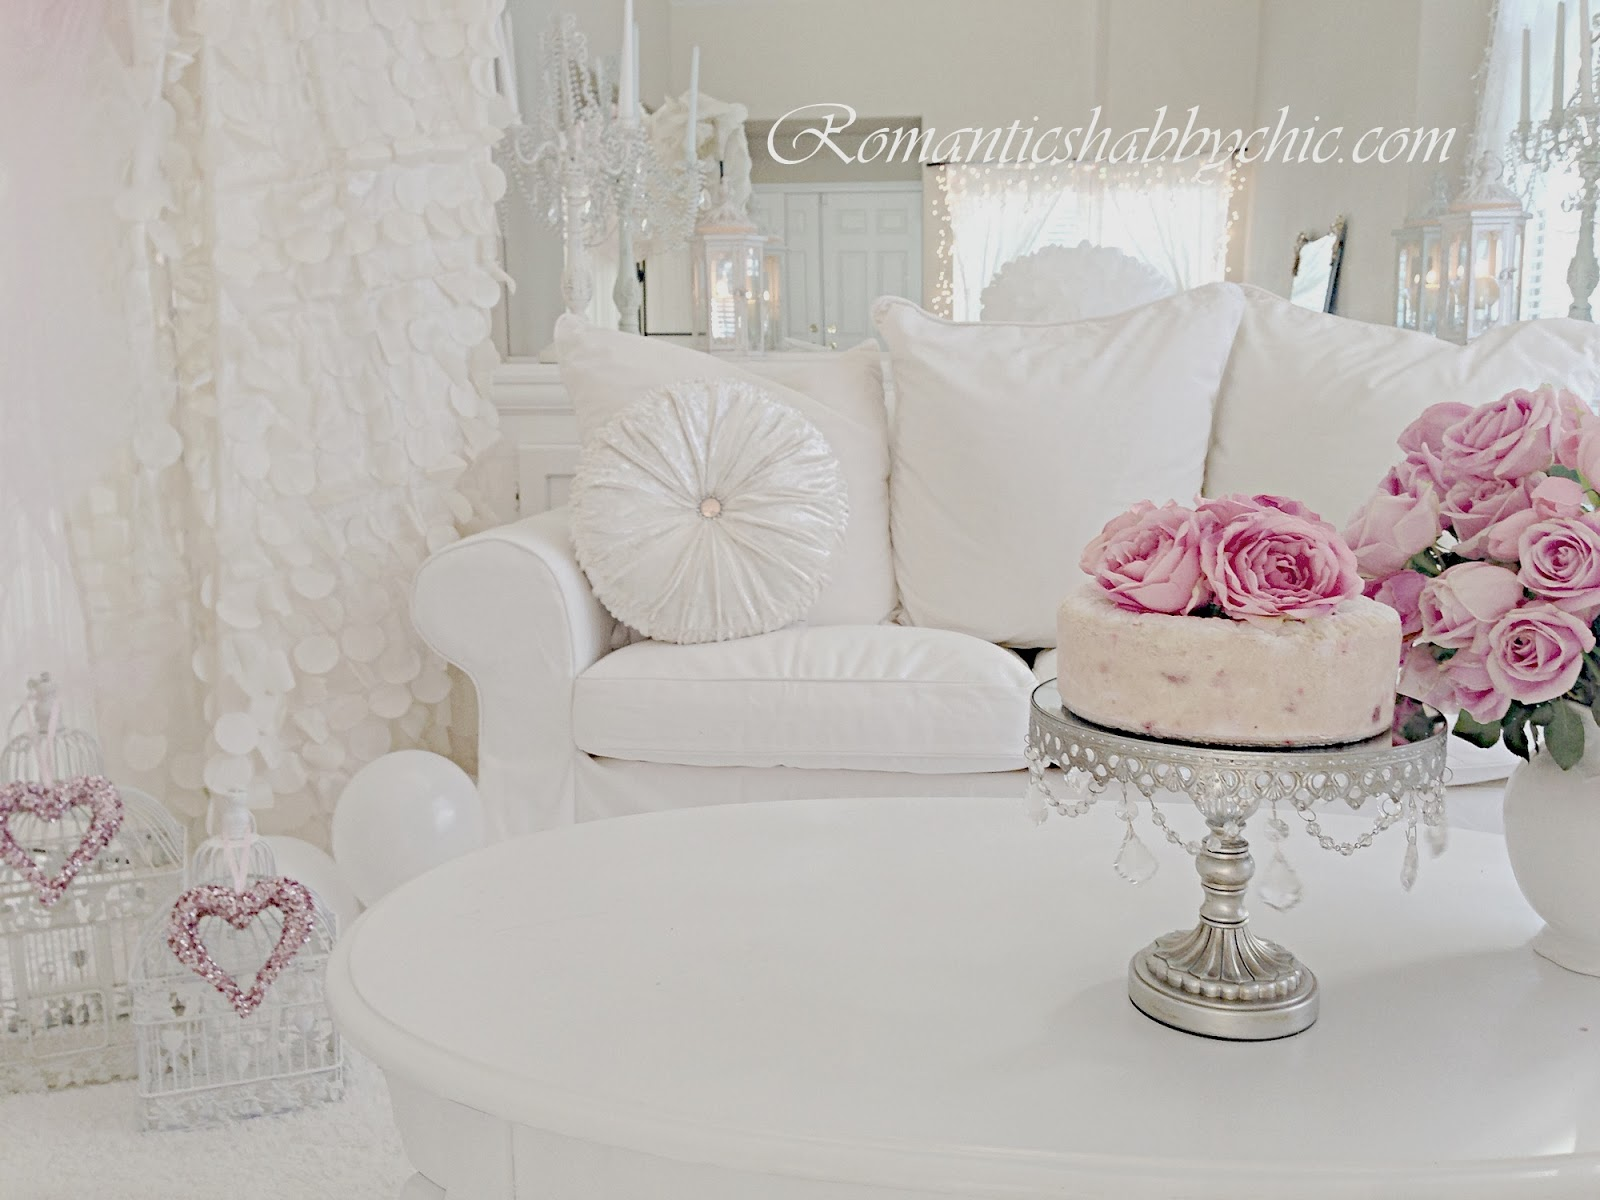 romantic shabby chic home romantic shabby chic blog. Black Bedroom Furniture Sets. Home Design Ideas